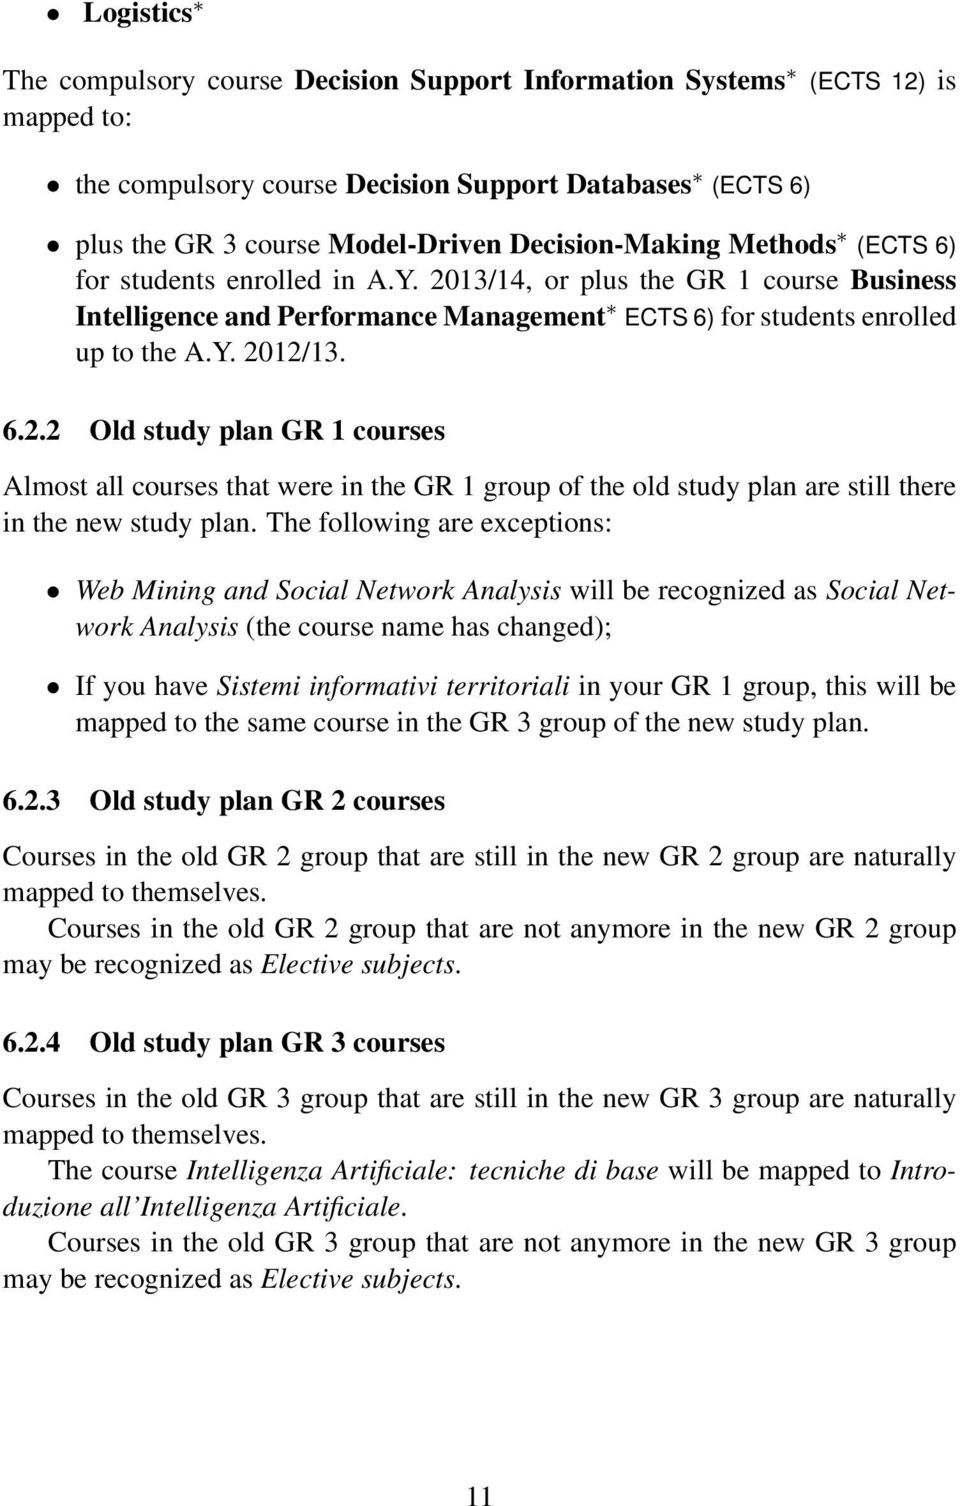 6.2.2 Old study plan GR 1 courses Almost all courses that were in the GR 1 group of the old study plan are still there in the new study plan.